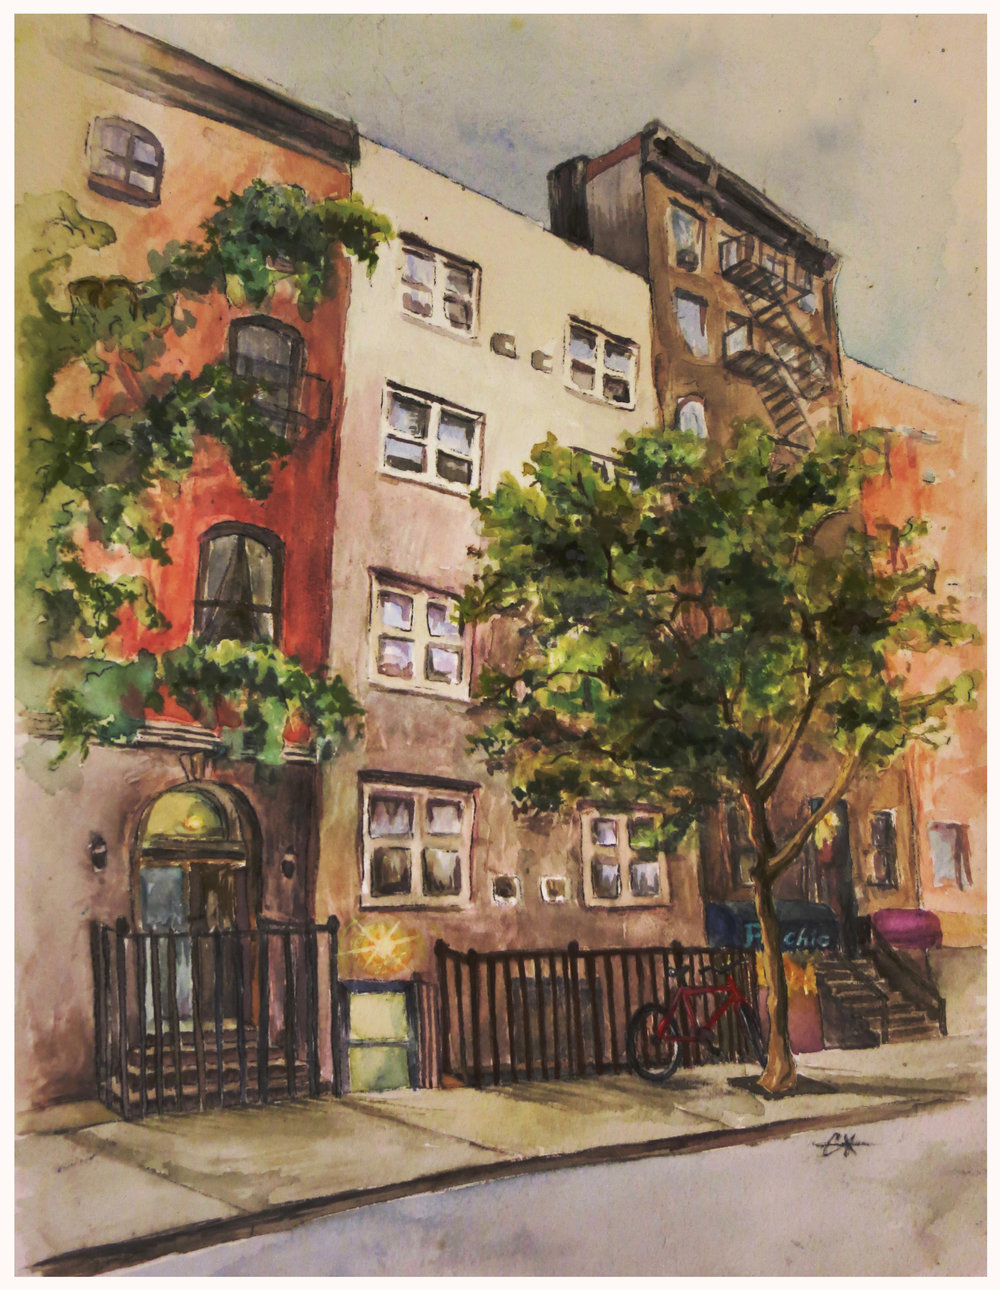 11th Street - w atercolor on arches- private commission